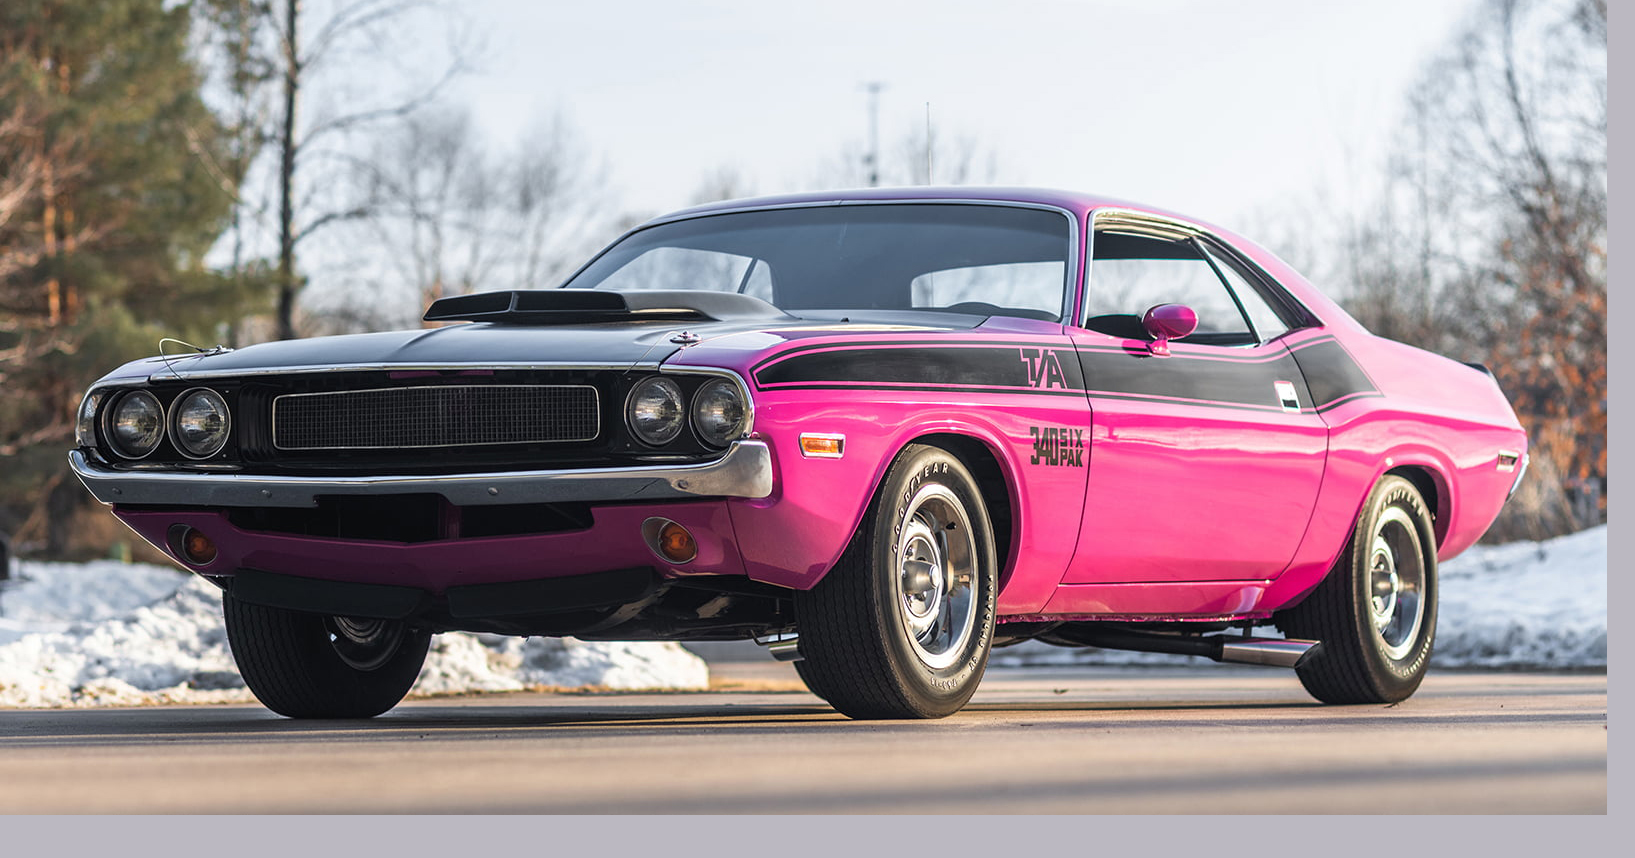 2. 1971 Pink Panther Dodge Challenger T-A